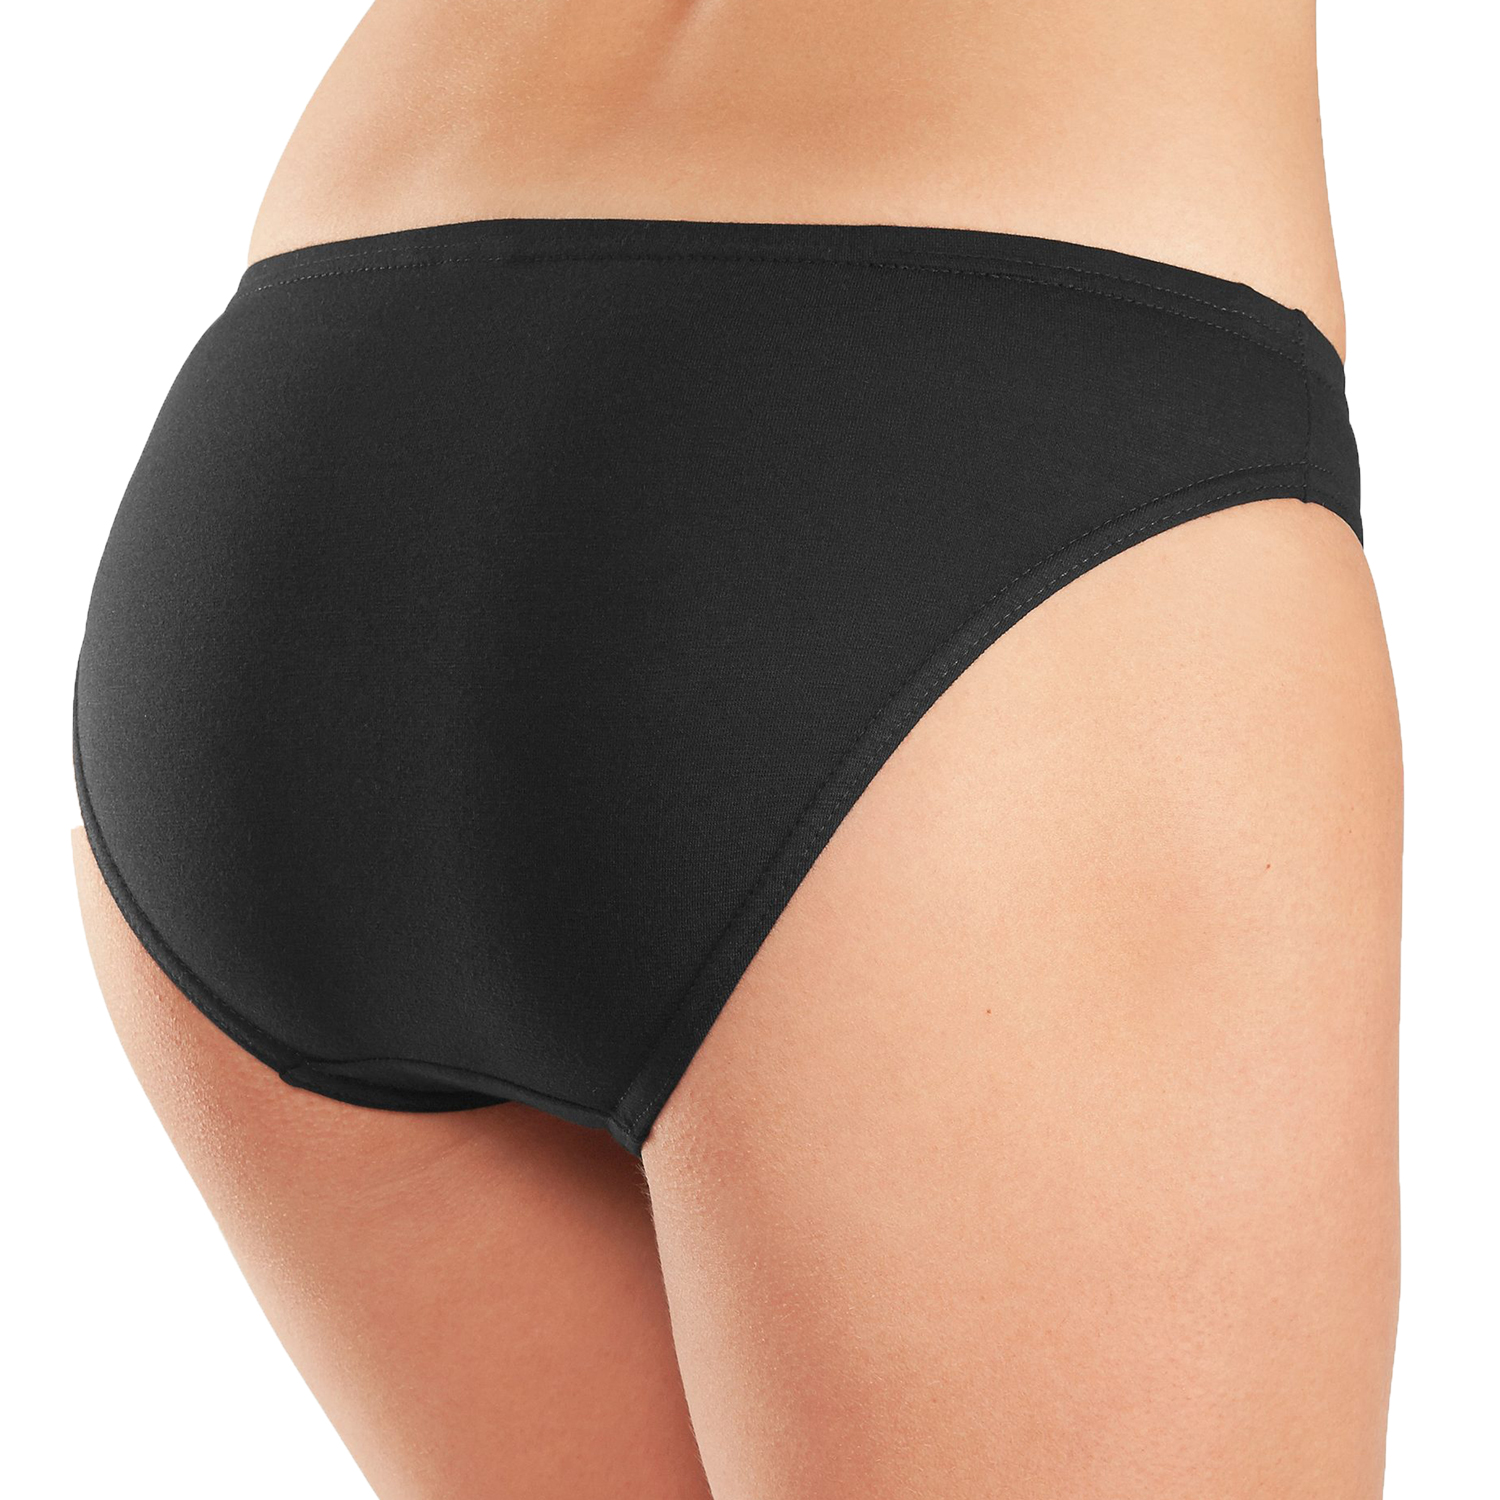 5er Pack HIS Damen Slips – Bild 9